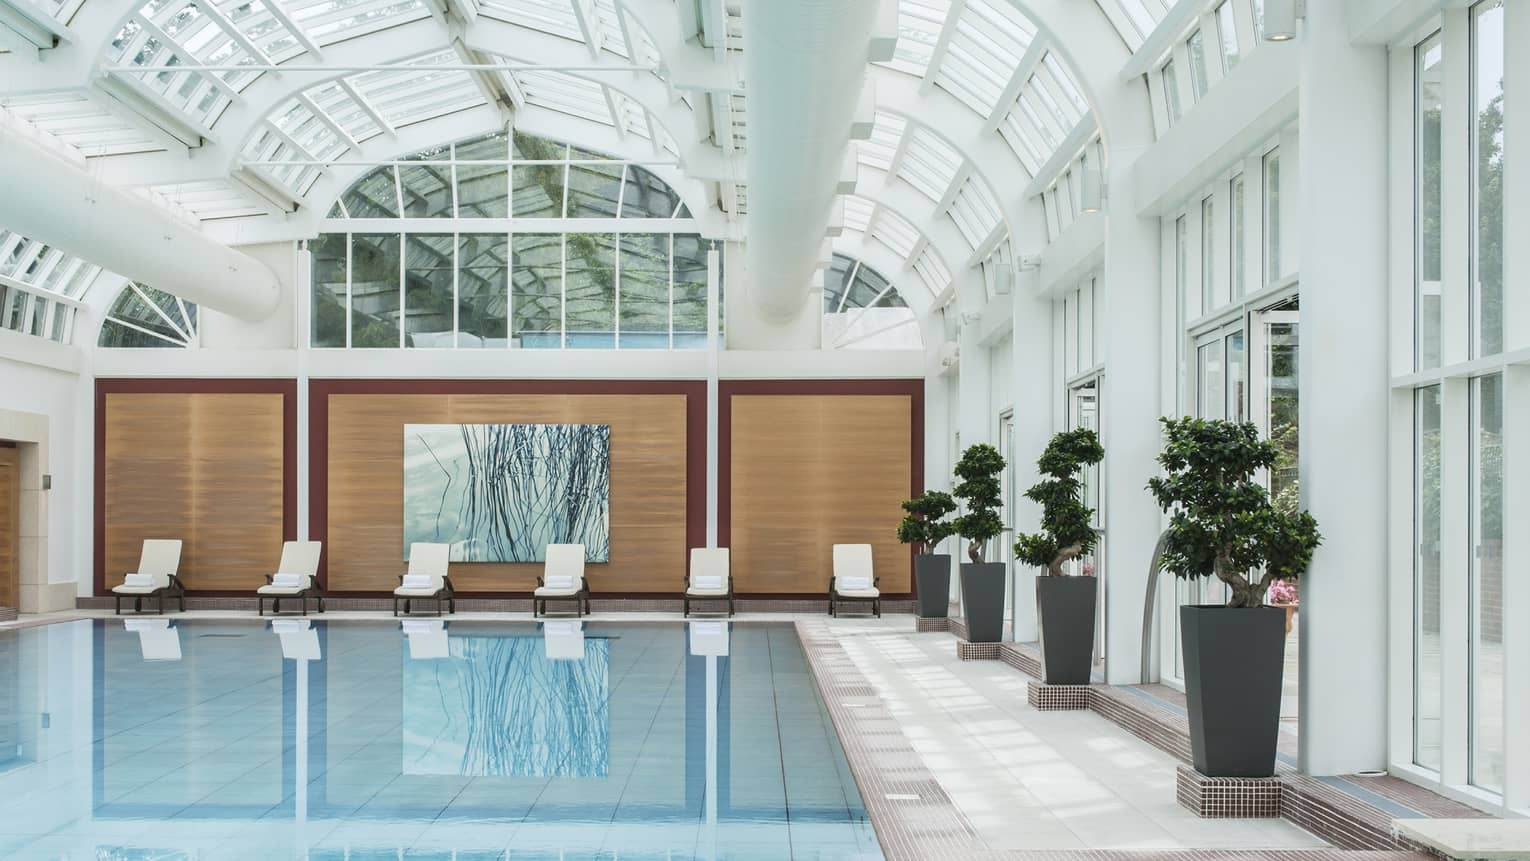 Lounge chairs, potted trees around indoor swimming pool under domed skylights, white beams